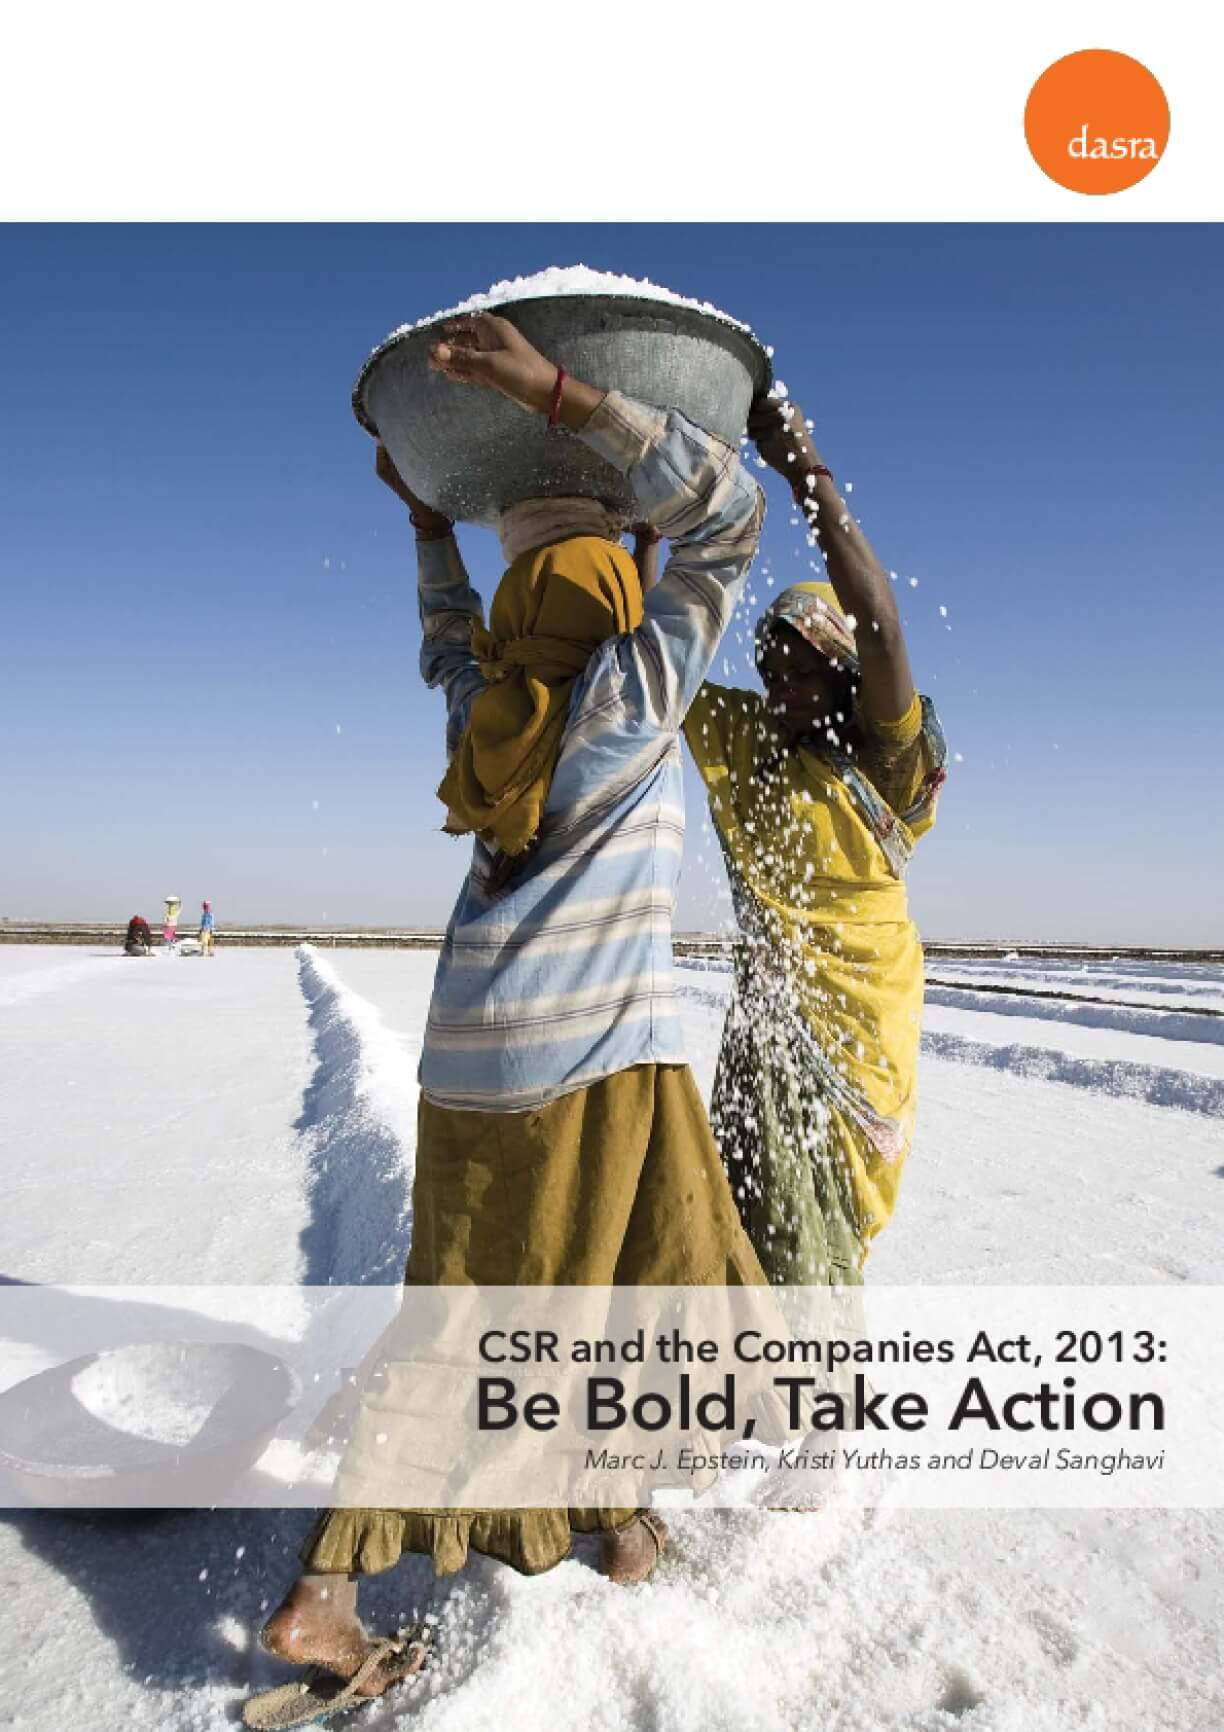 CSR and the Companies Act, 2013: Be Bold, Take Action